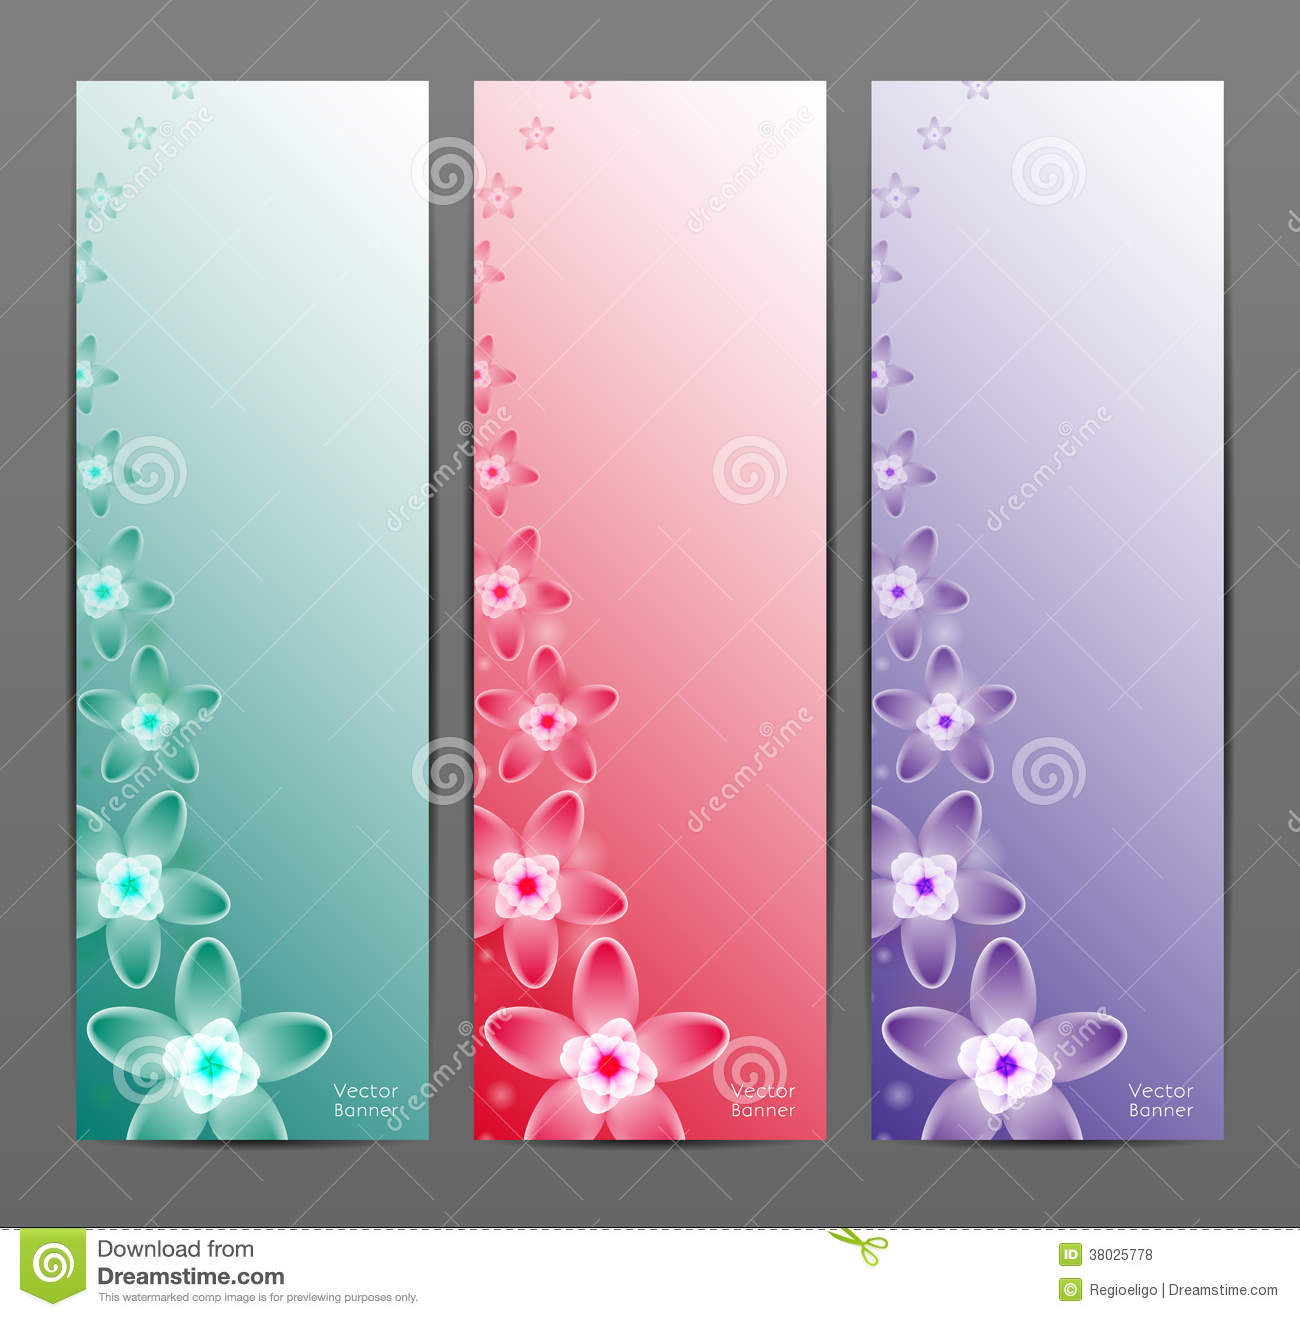 Cute Circle Wallpaper Abstract Flower Vector Background Brochure Template